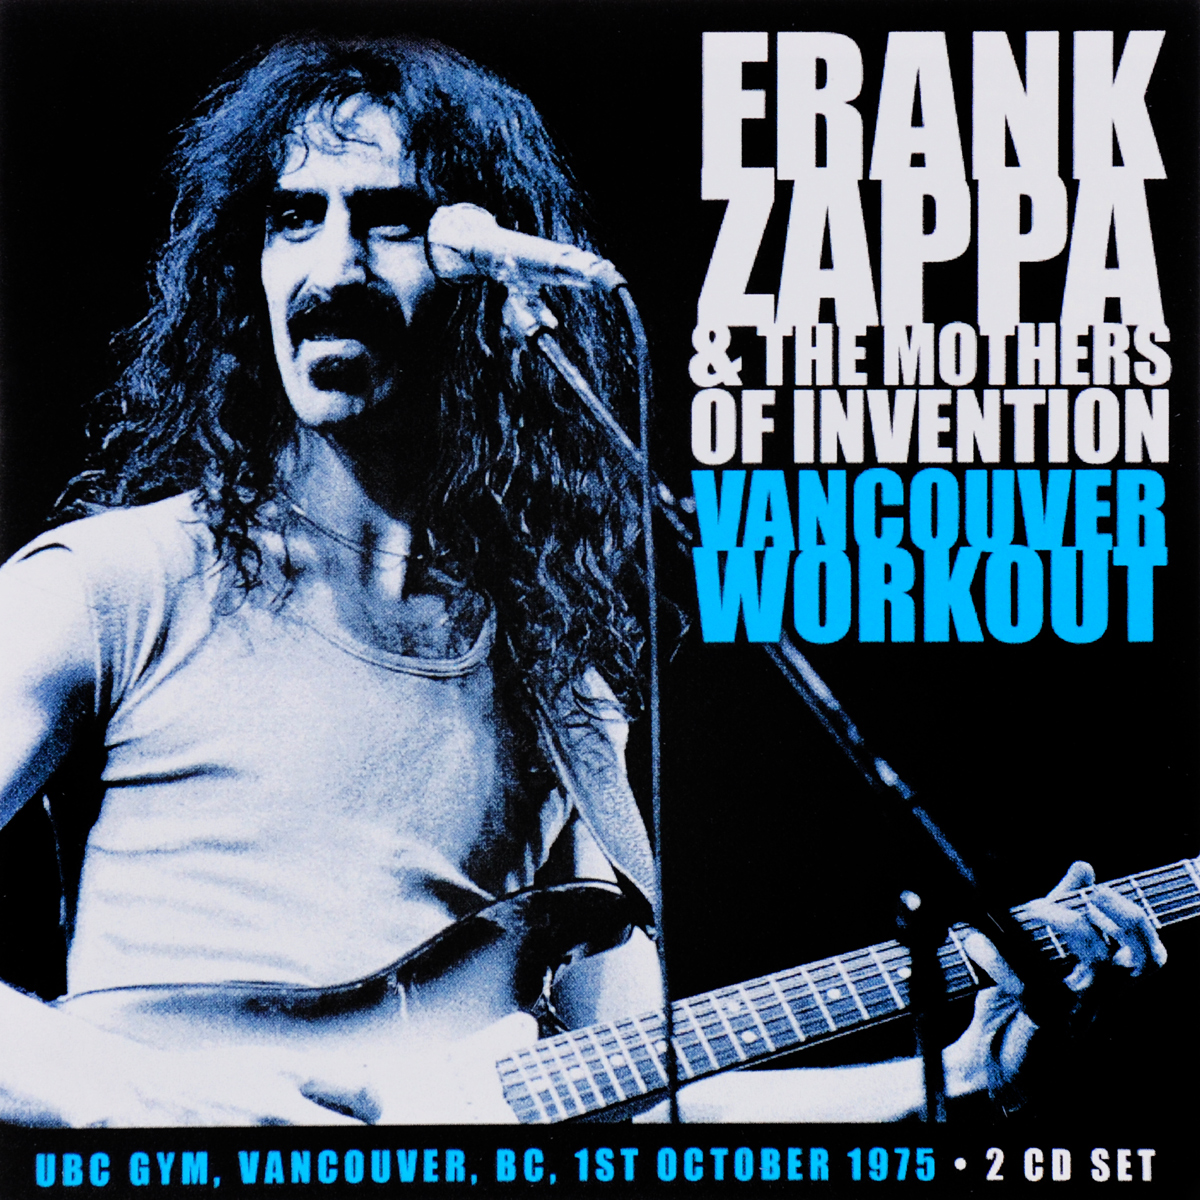 Фрэнк Заппа,The Mothers Of Invention Frank Zappa & The Mothers Of Invention. Vancouver Workout (2 CD)